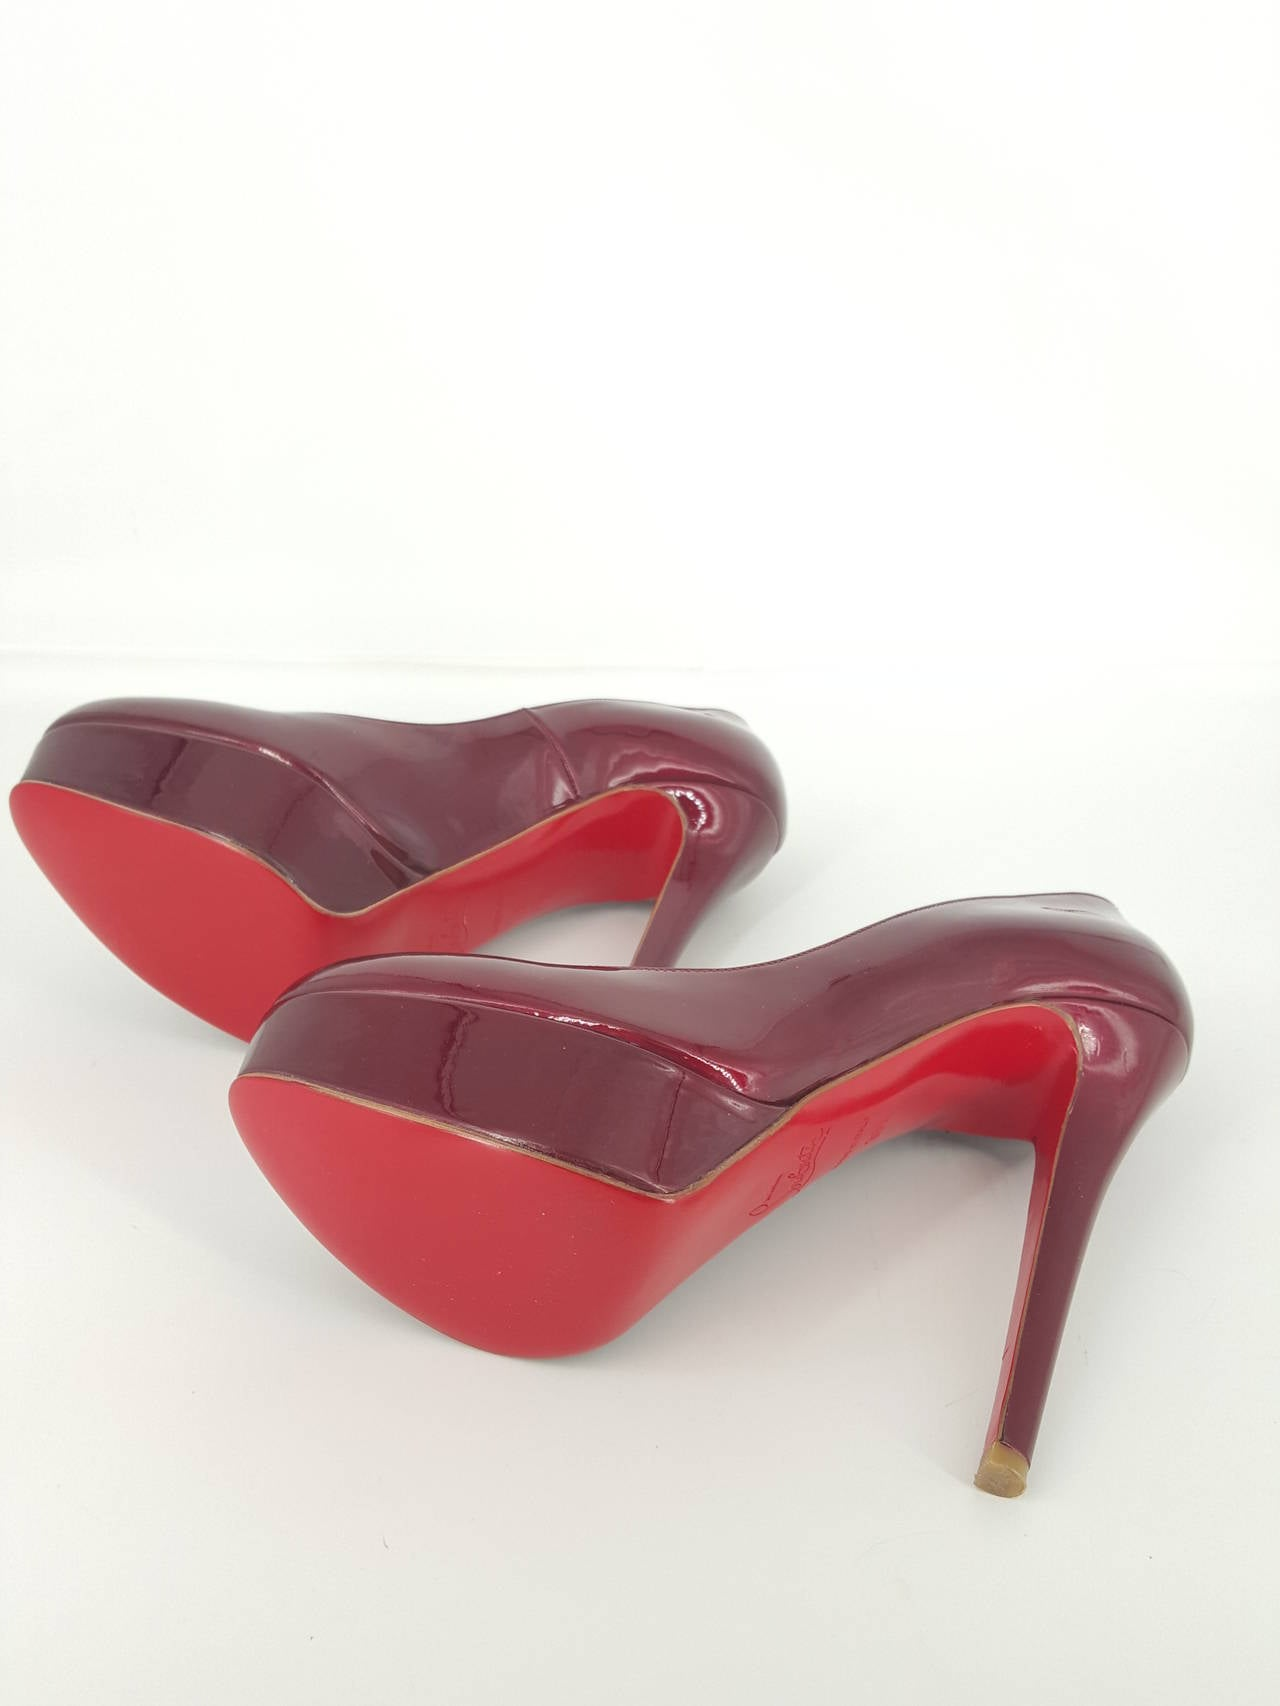 Christian Louboutin Candy Apple Red Patent Leather Pumps Size 36 1/2 3